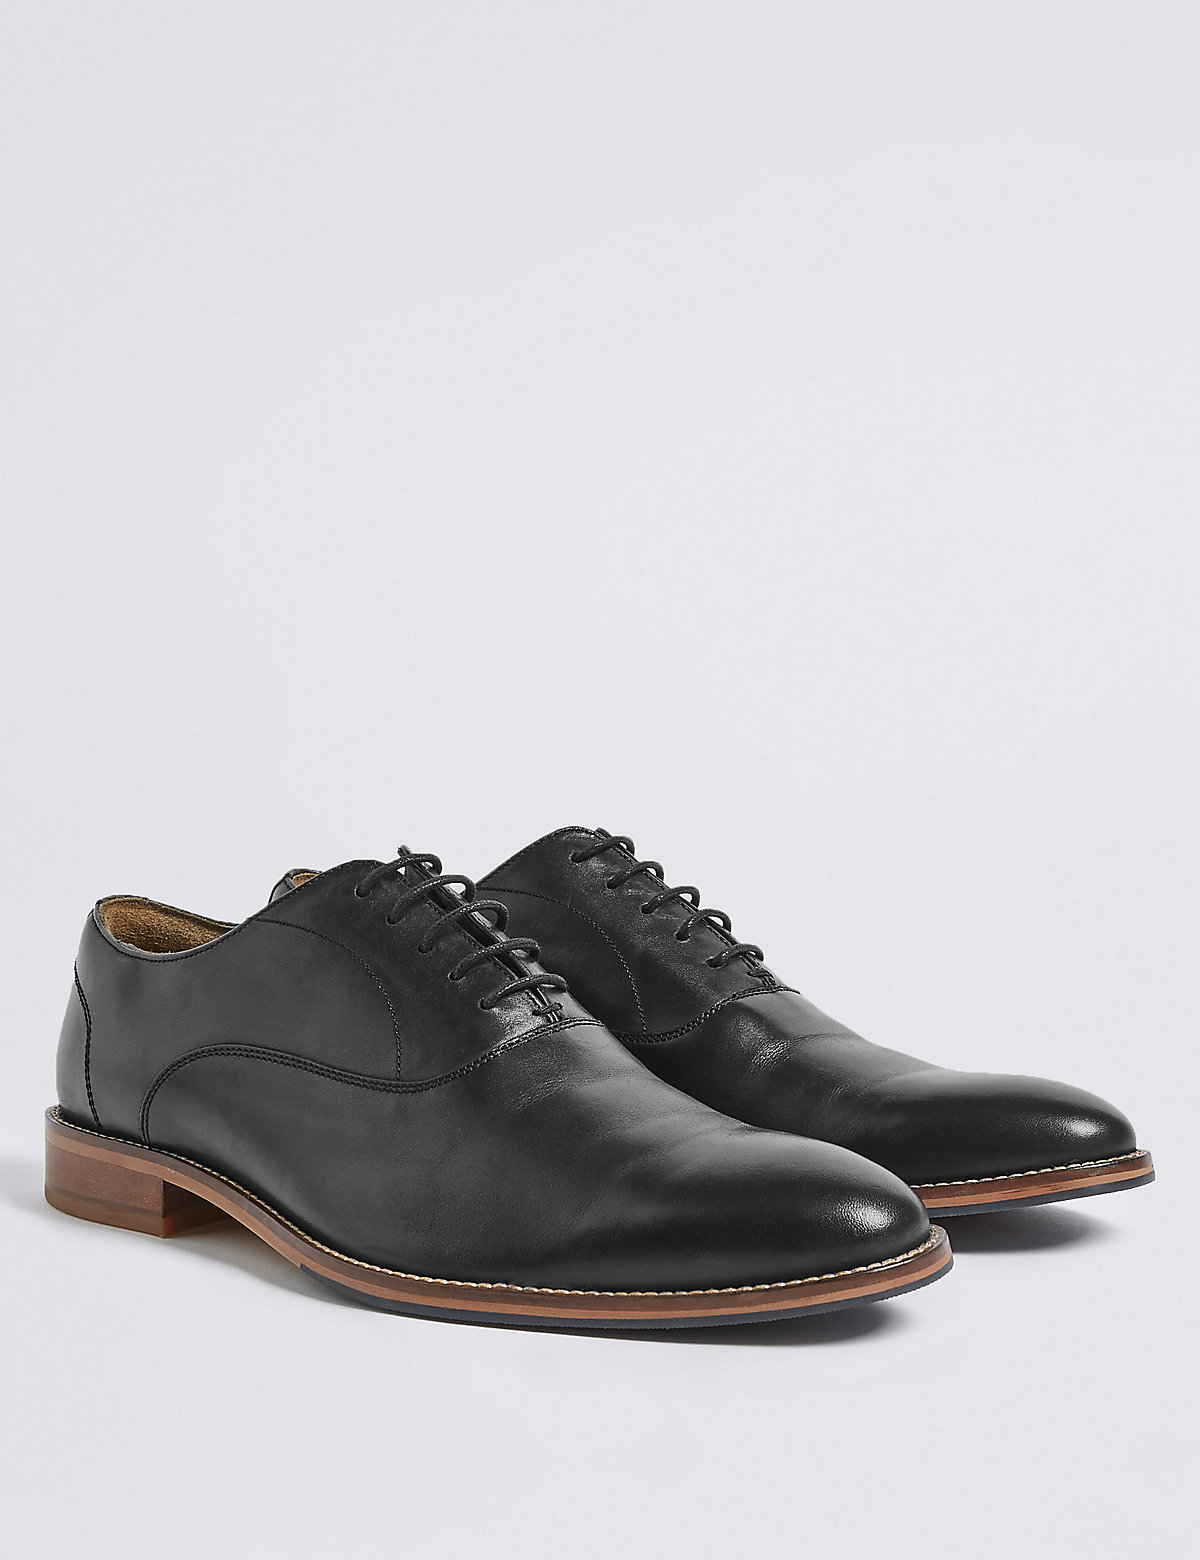 Marks & Spencer Black Leather Layered Derby Shoes